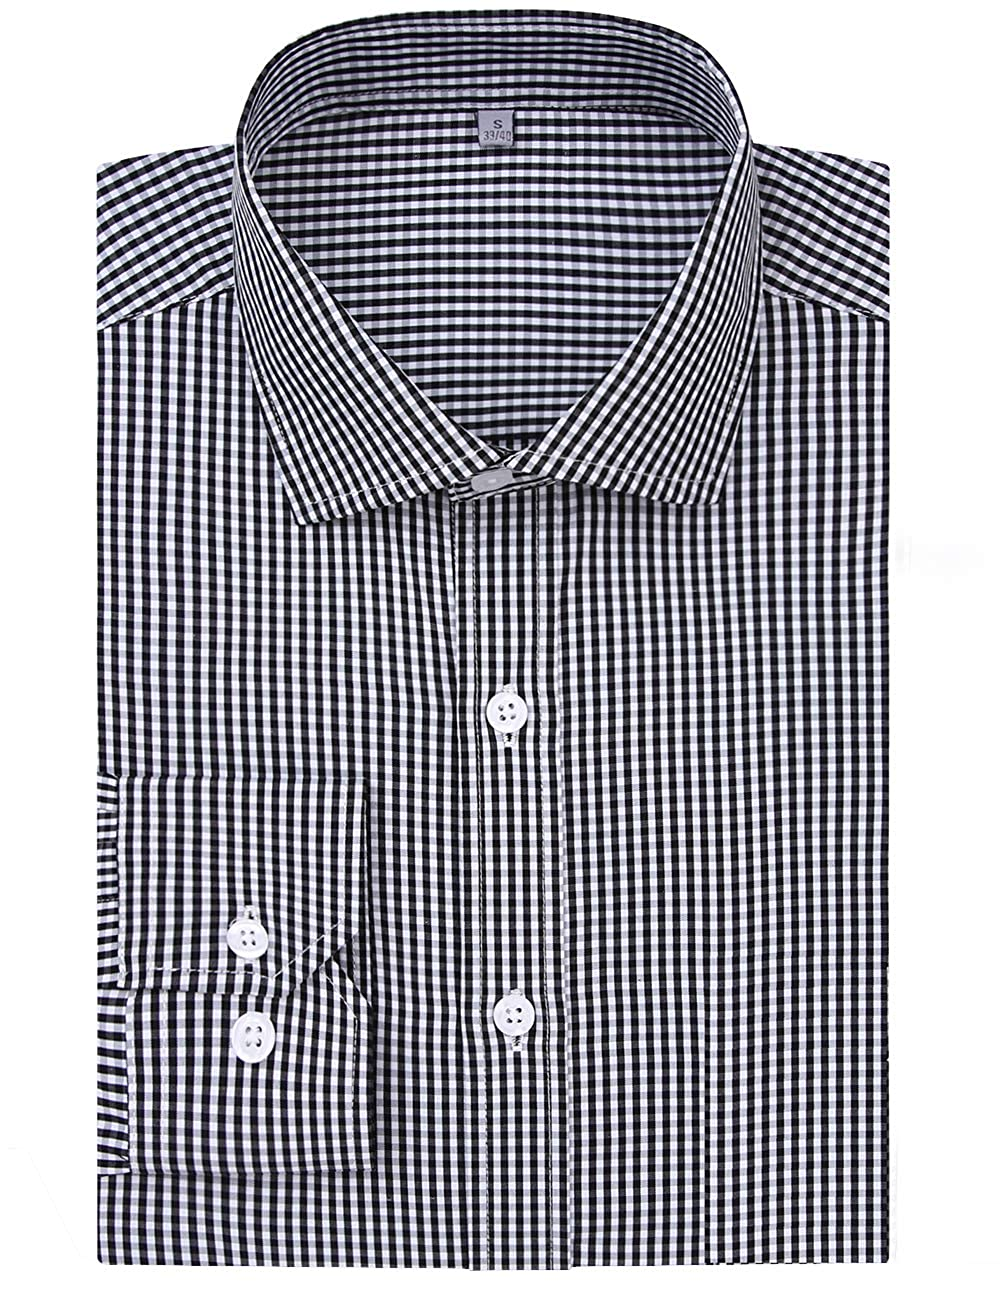 473a10eafc STYLE:Men's Tops Summer Fashion Slim Fit Dress Shirts(Classic Plaid  Gingham) FEATURE:This Stylish Men's Collared Dress Shirt ...